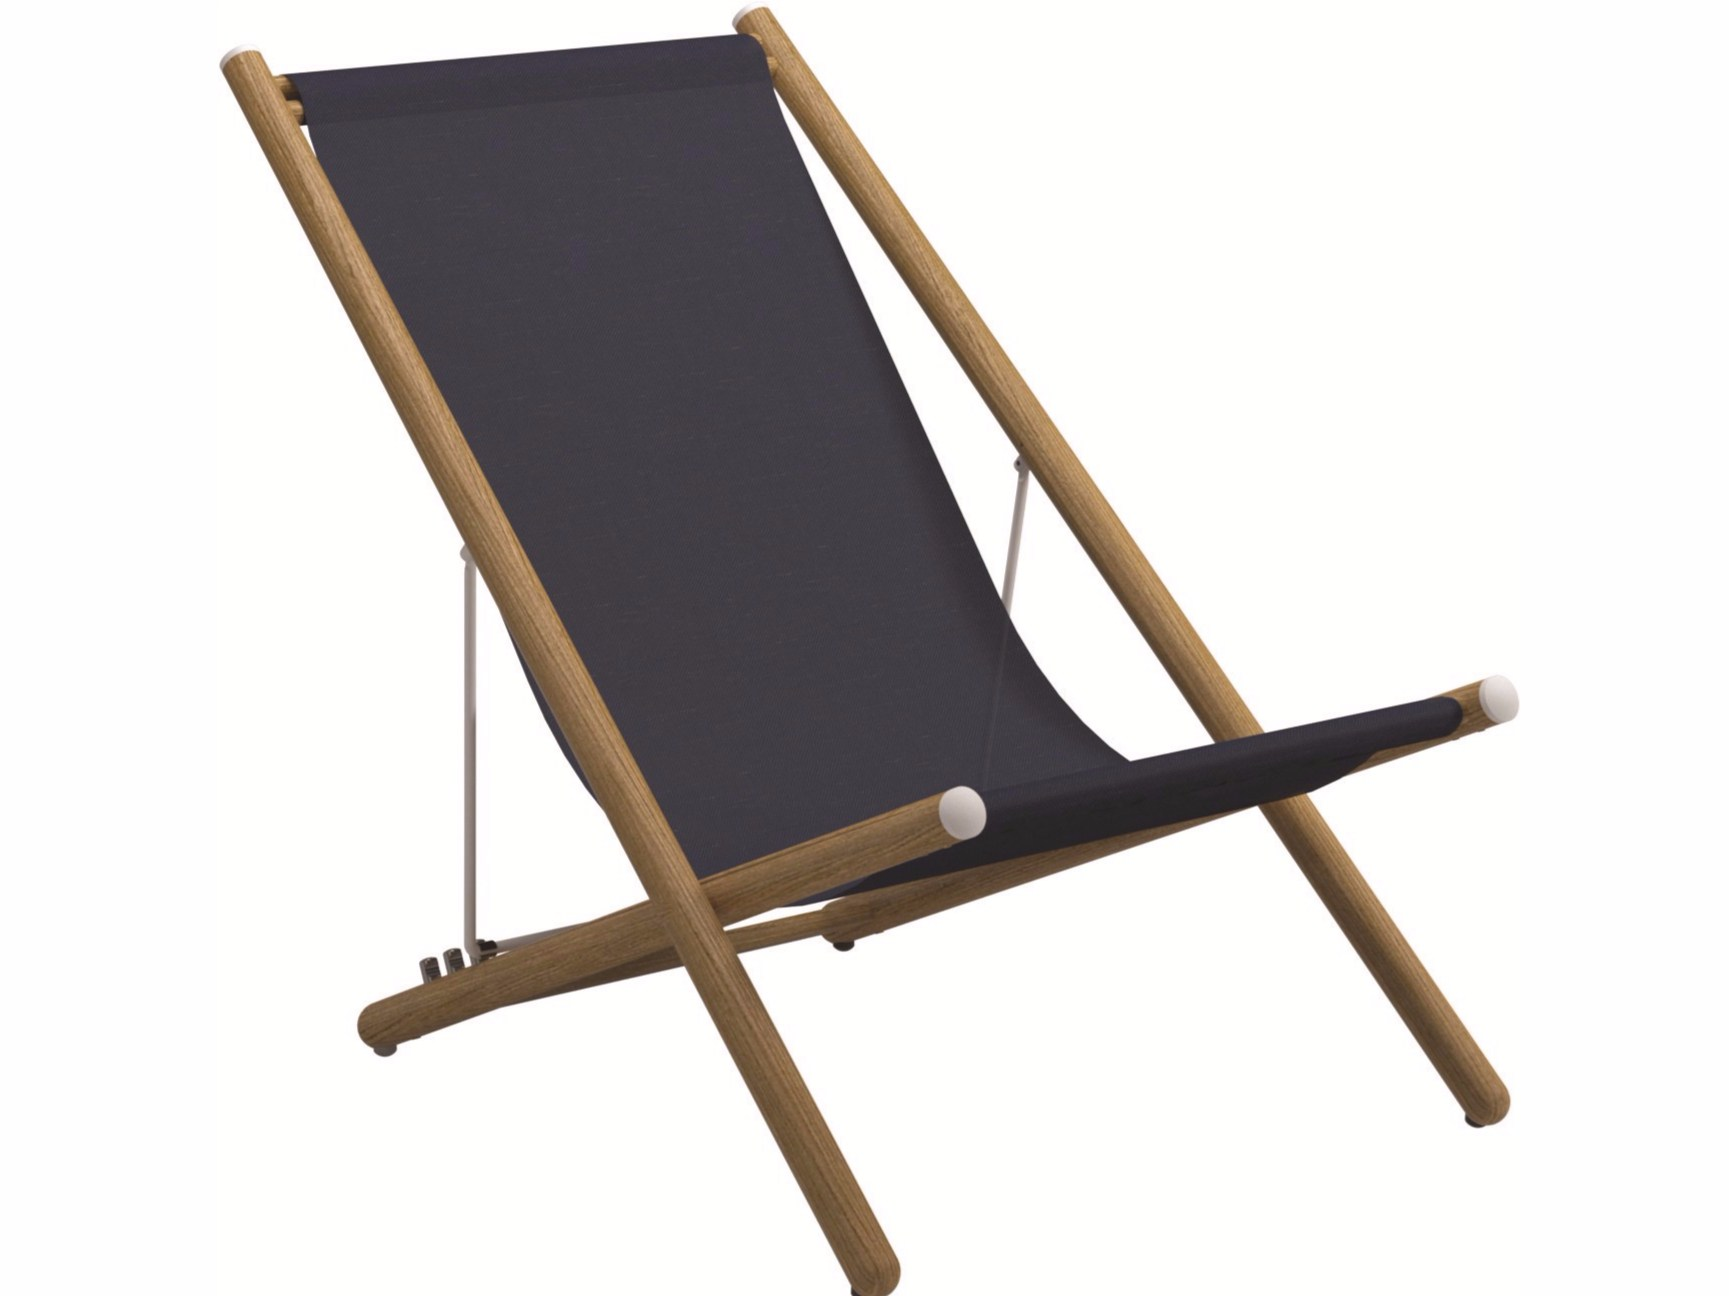 Wood Deck chairs